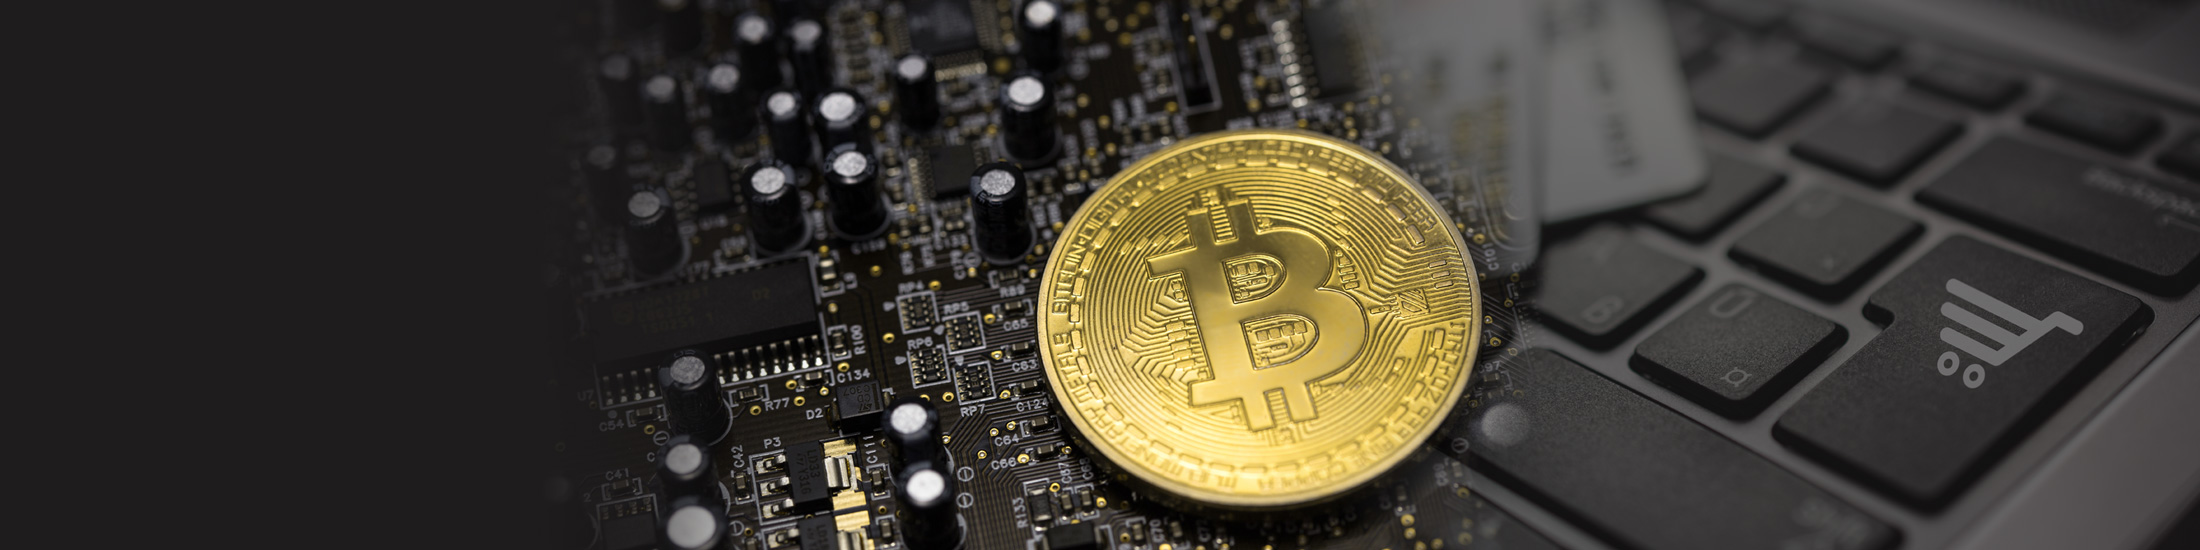 Startup Aims to Facilitate Crypto Payments for Online Merchants